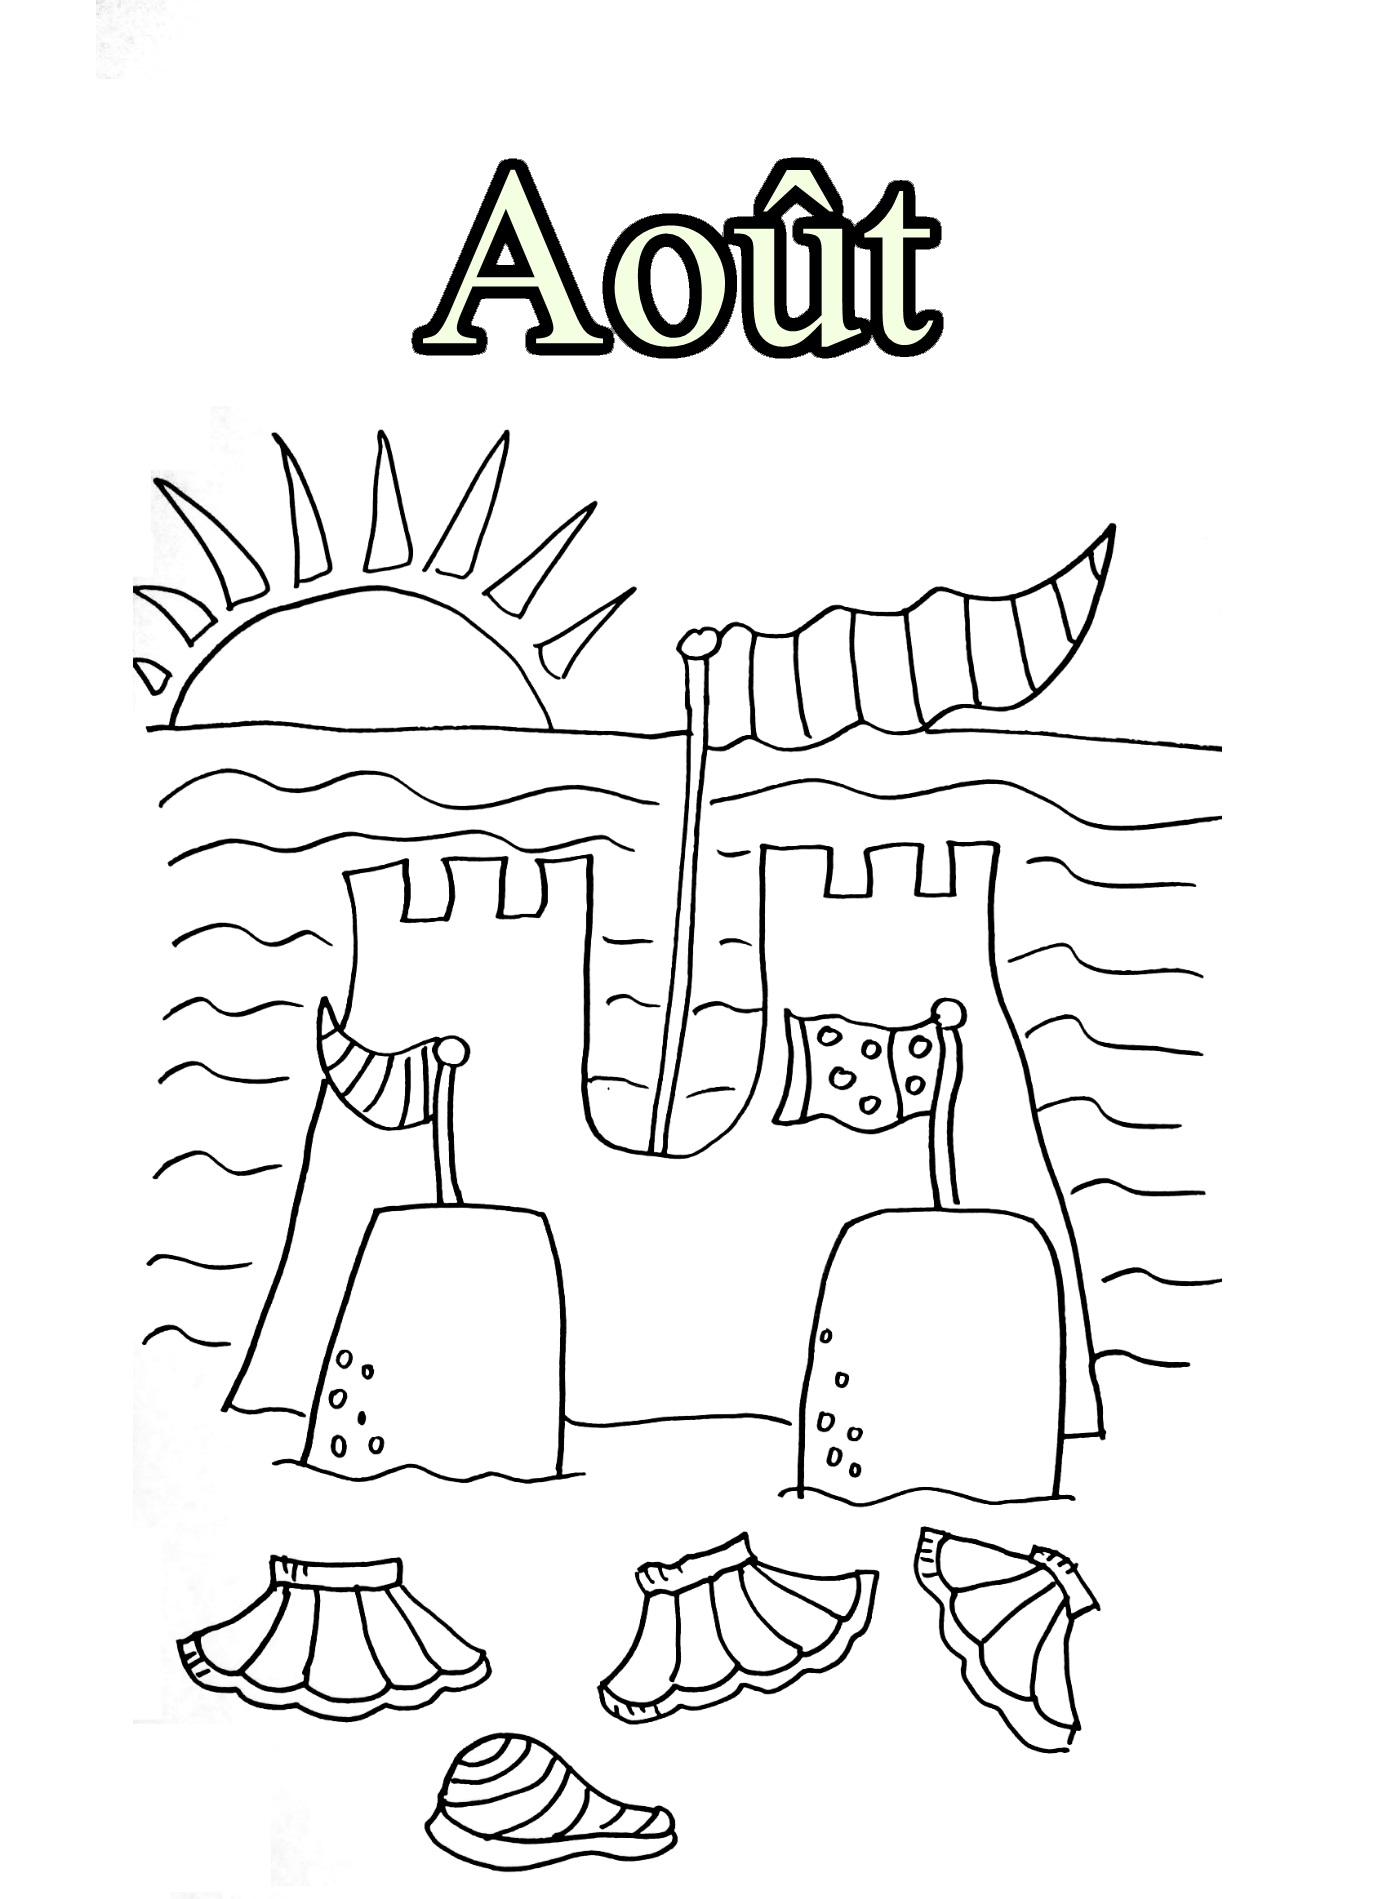 Simple Month coloring page